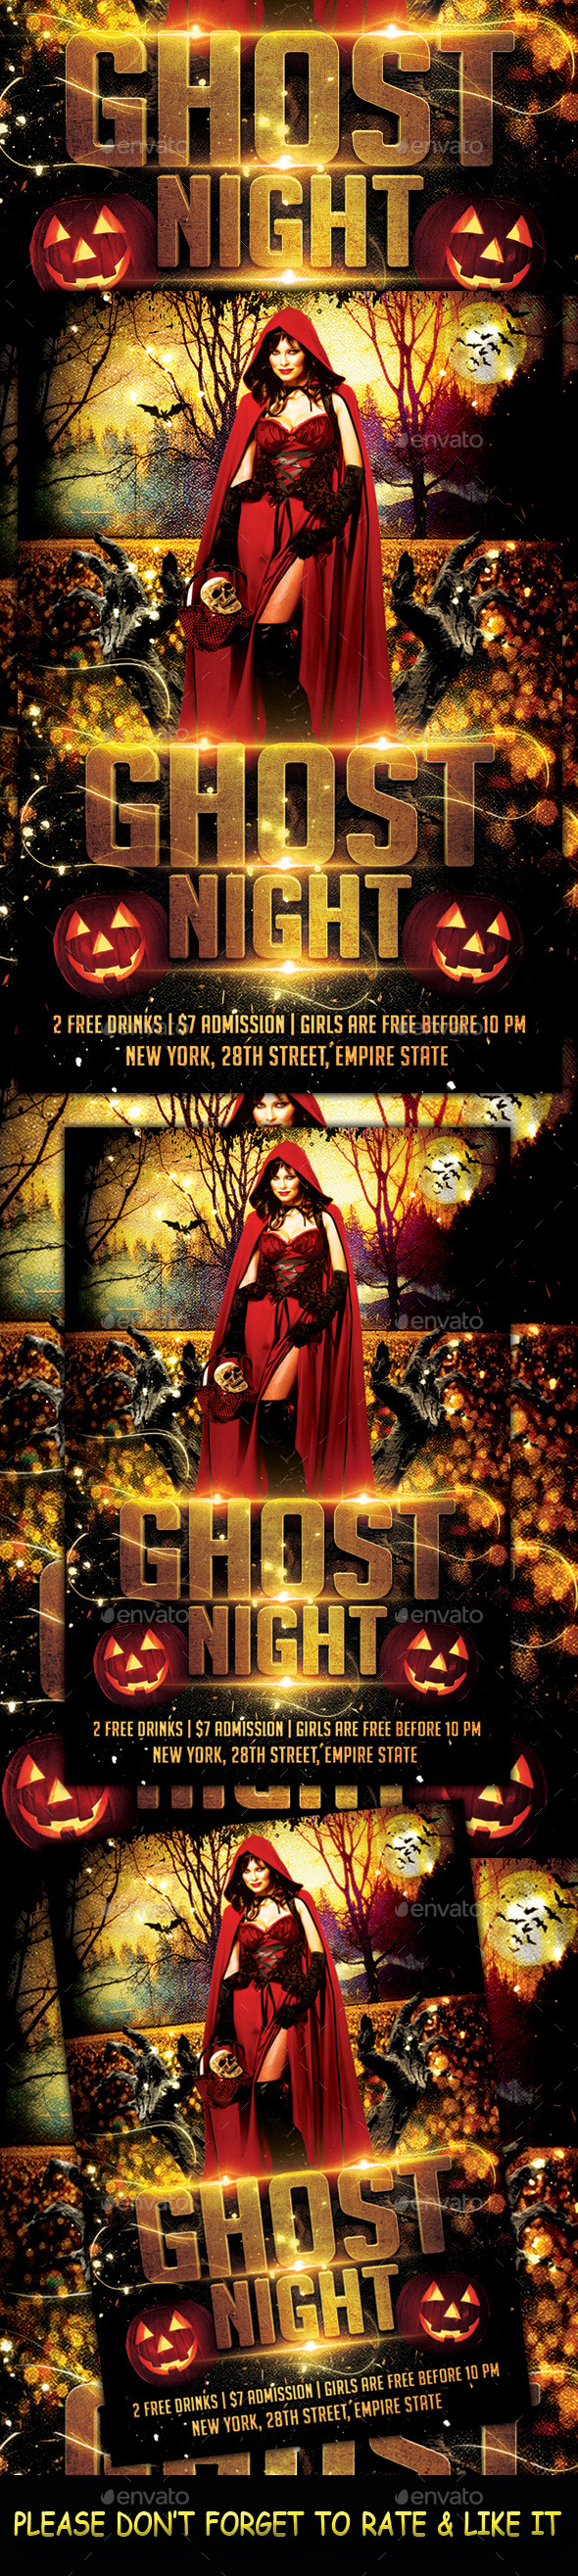 Ghost Night Flyer - Flyers Print Templates